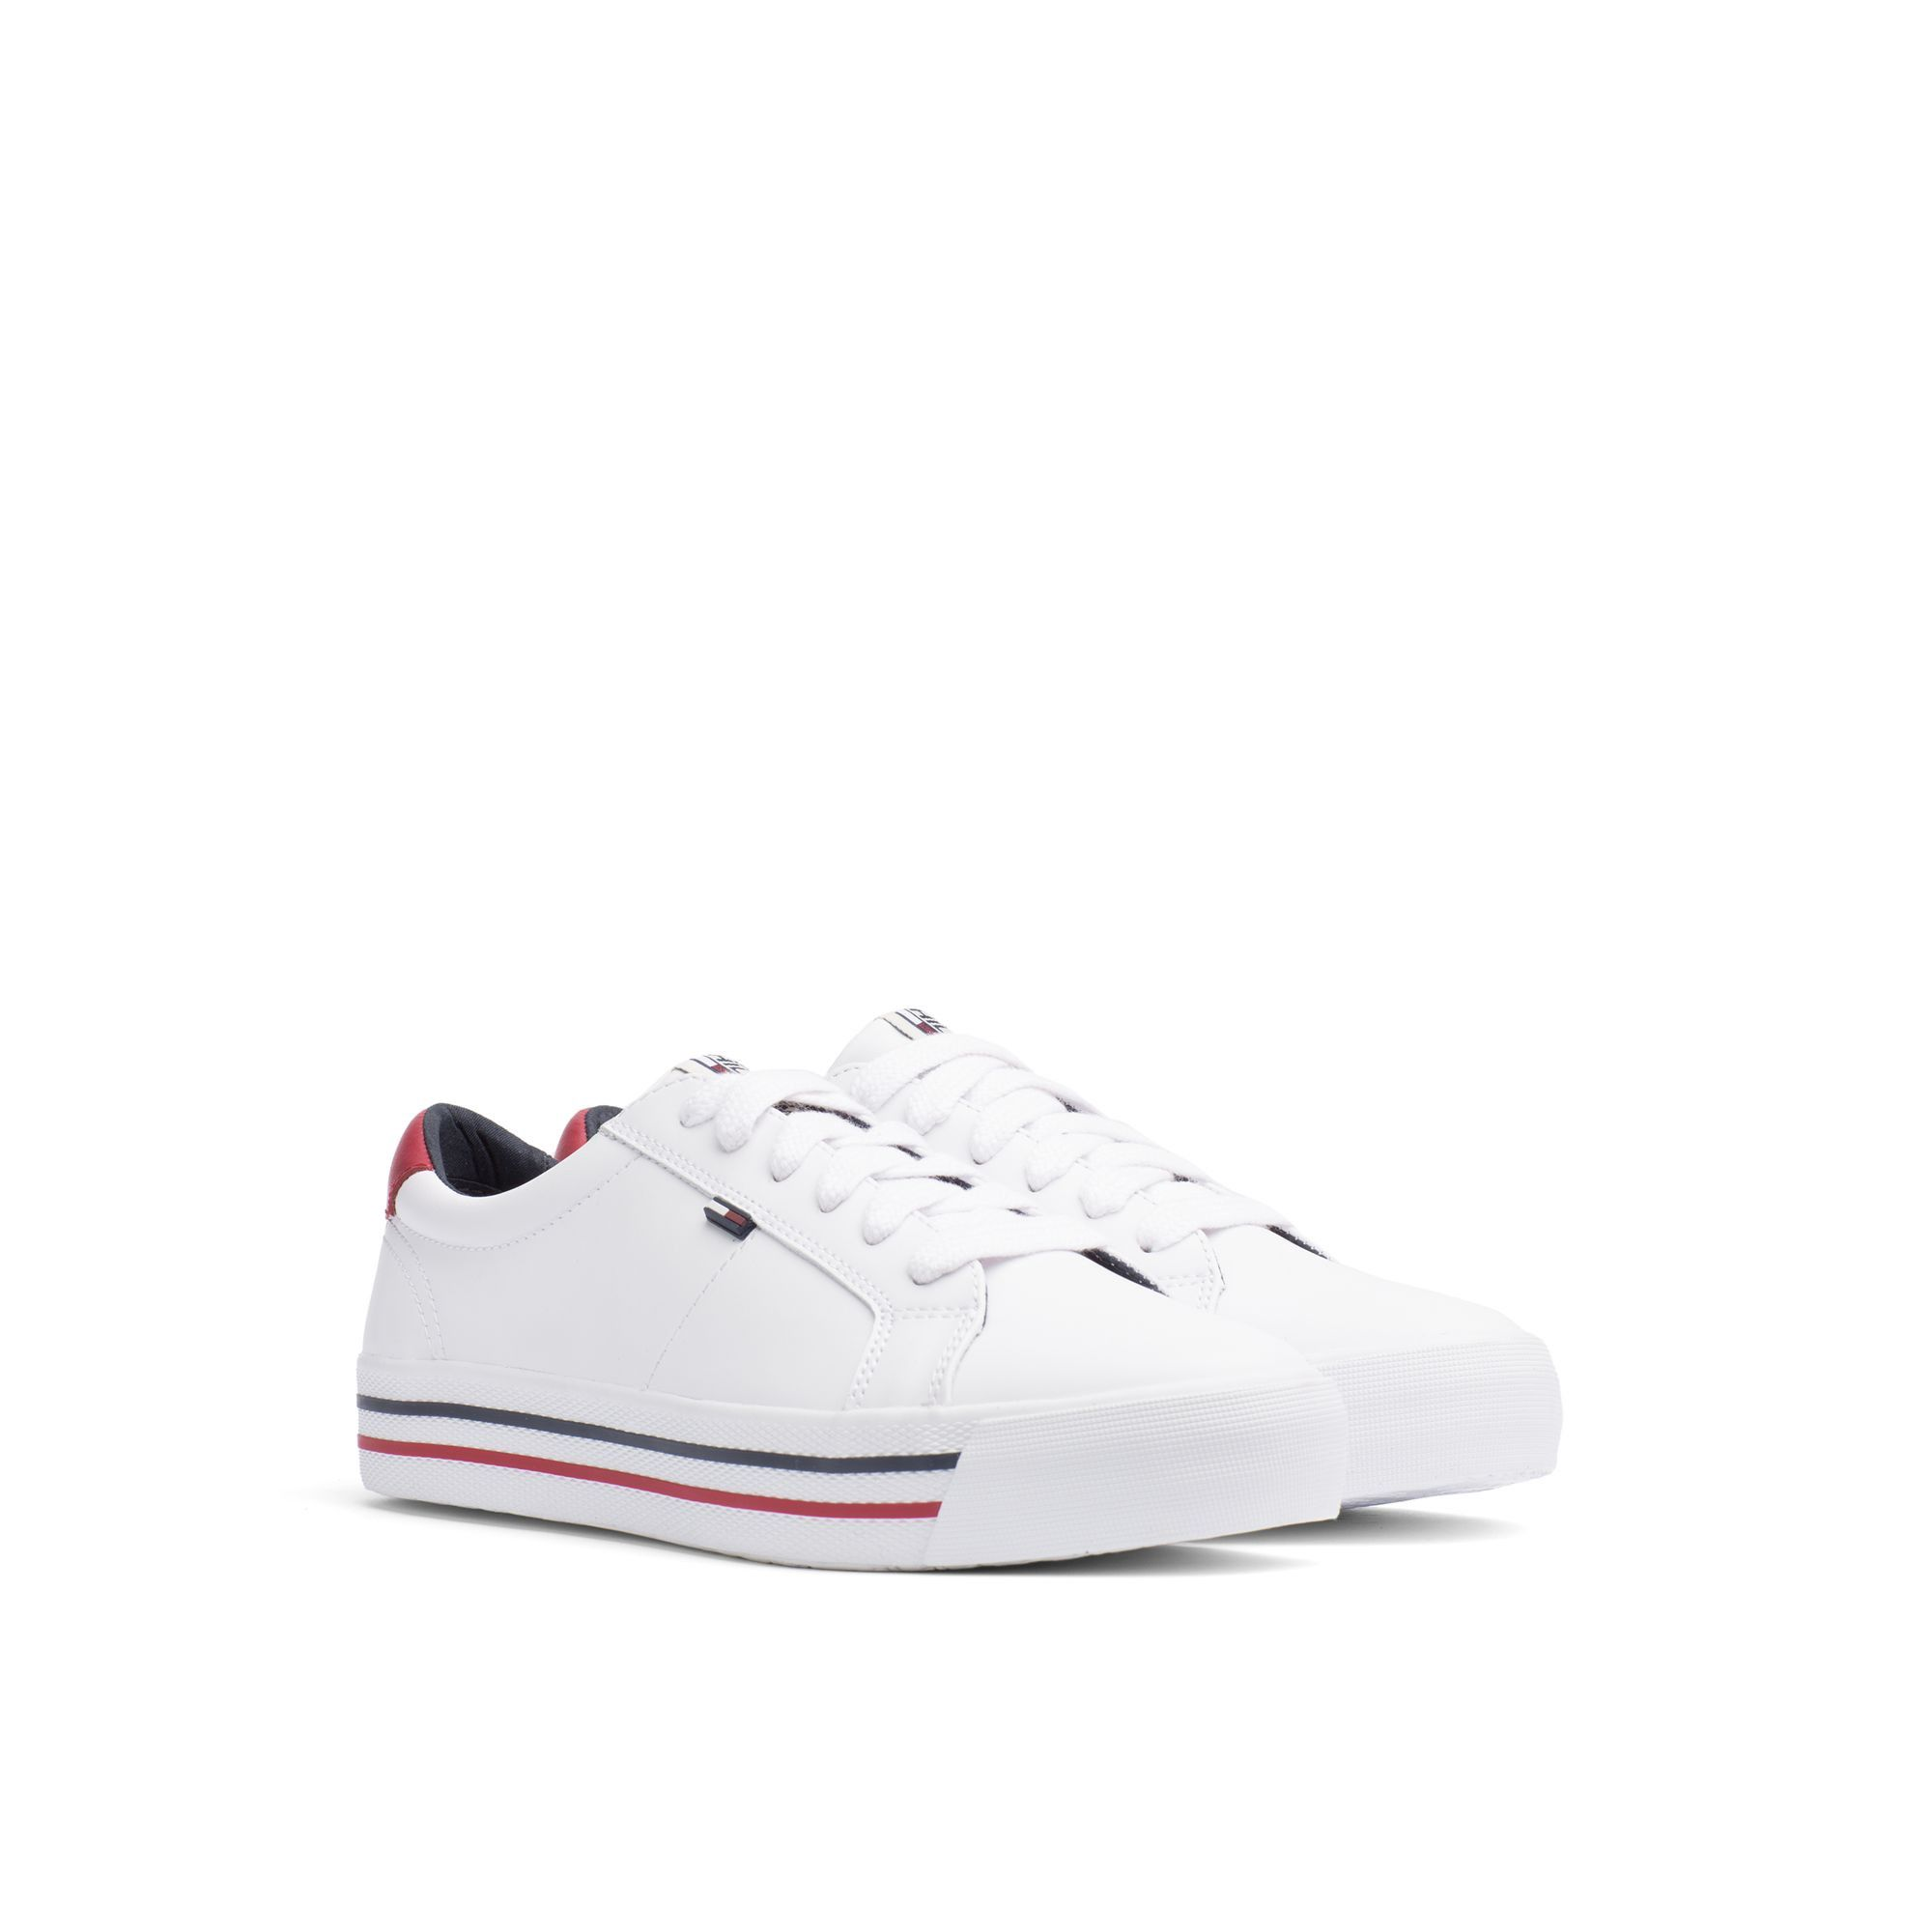 45ee00affed7 TOMMY HILFIGER STRIPED SOLE SNEAKER - WHITE.  tommyhilfiger  shoes ...